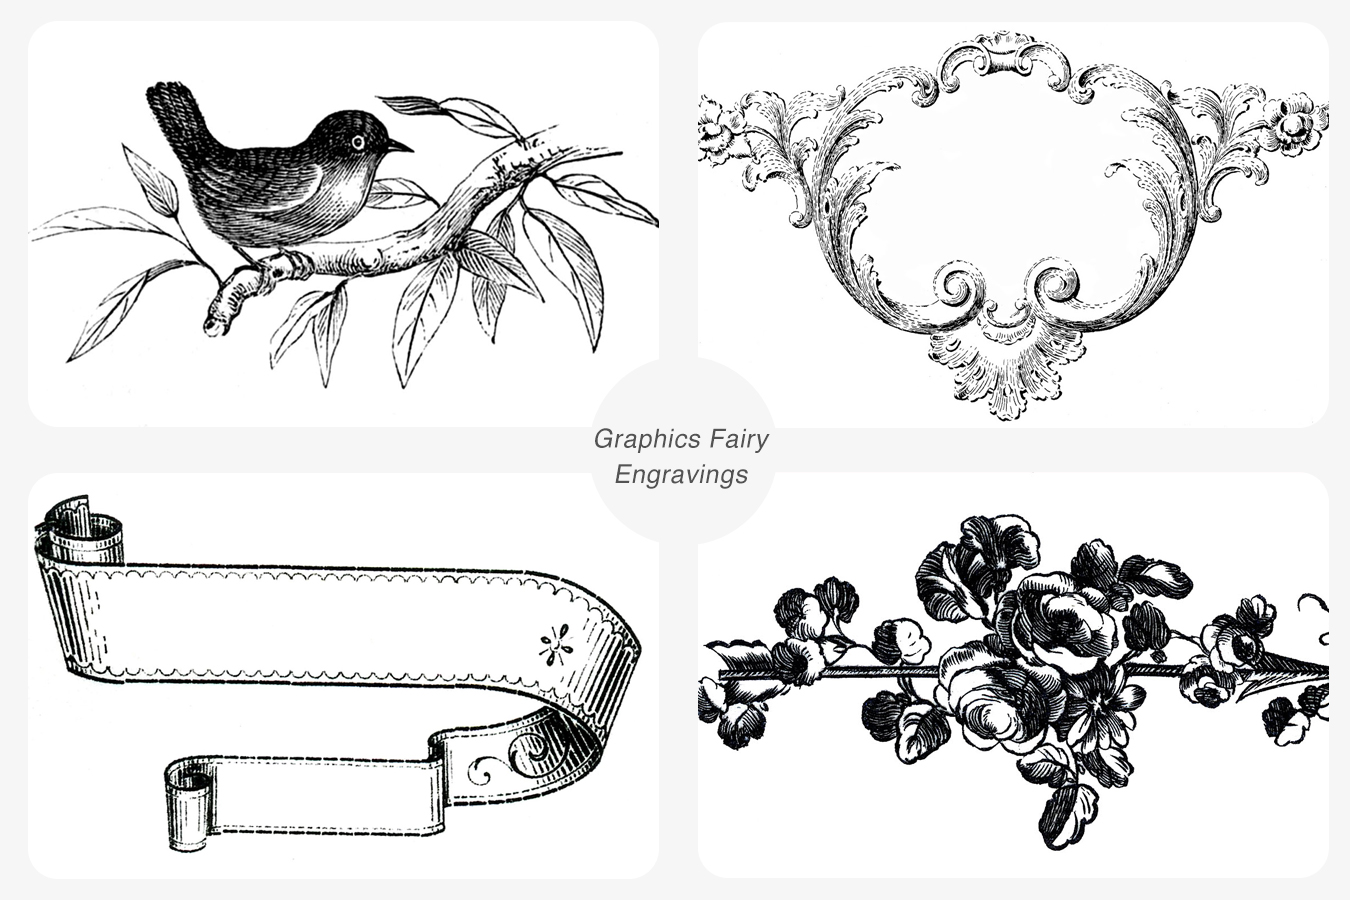 A selection of vintage engraving images